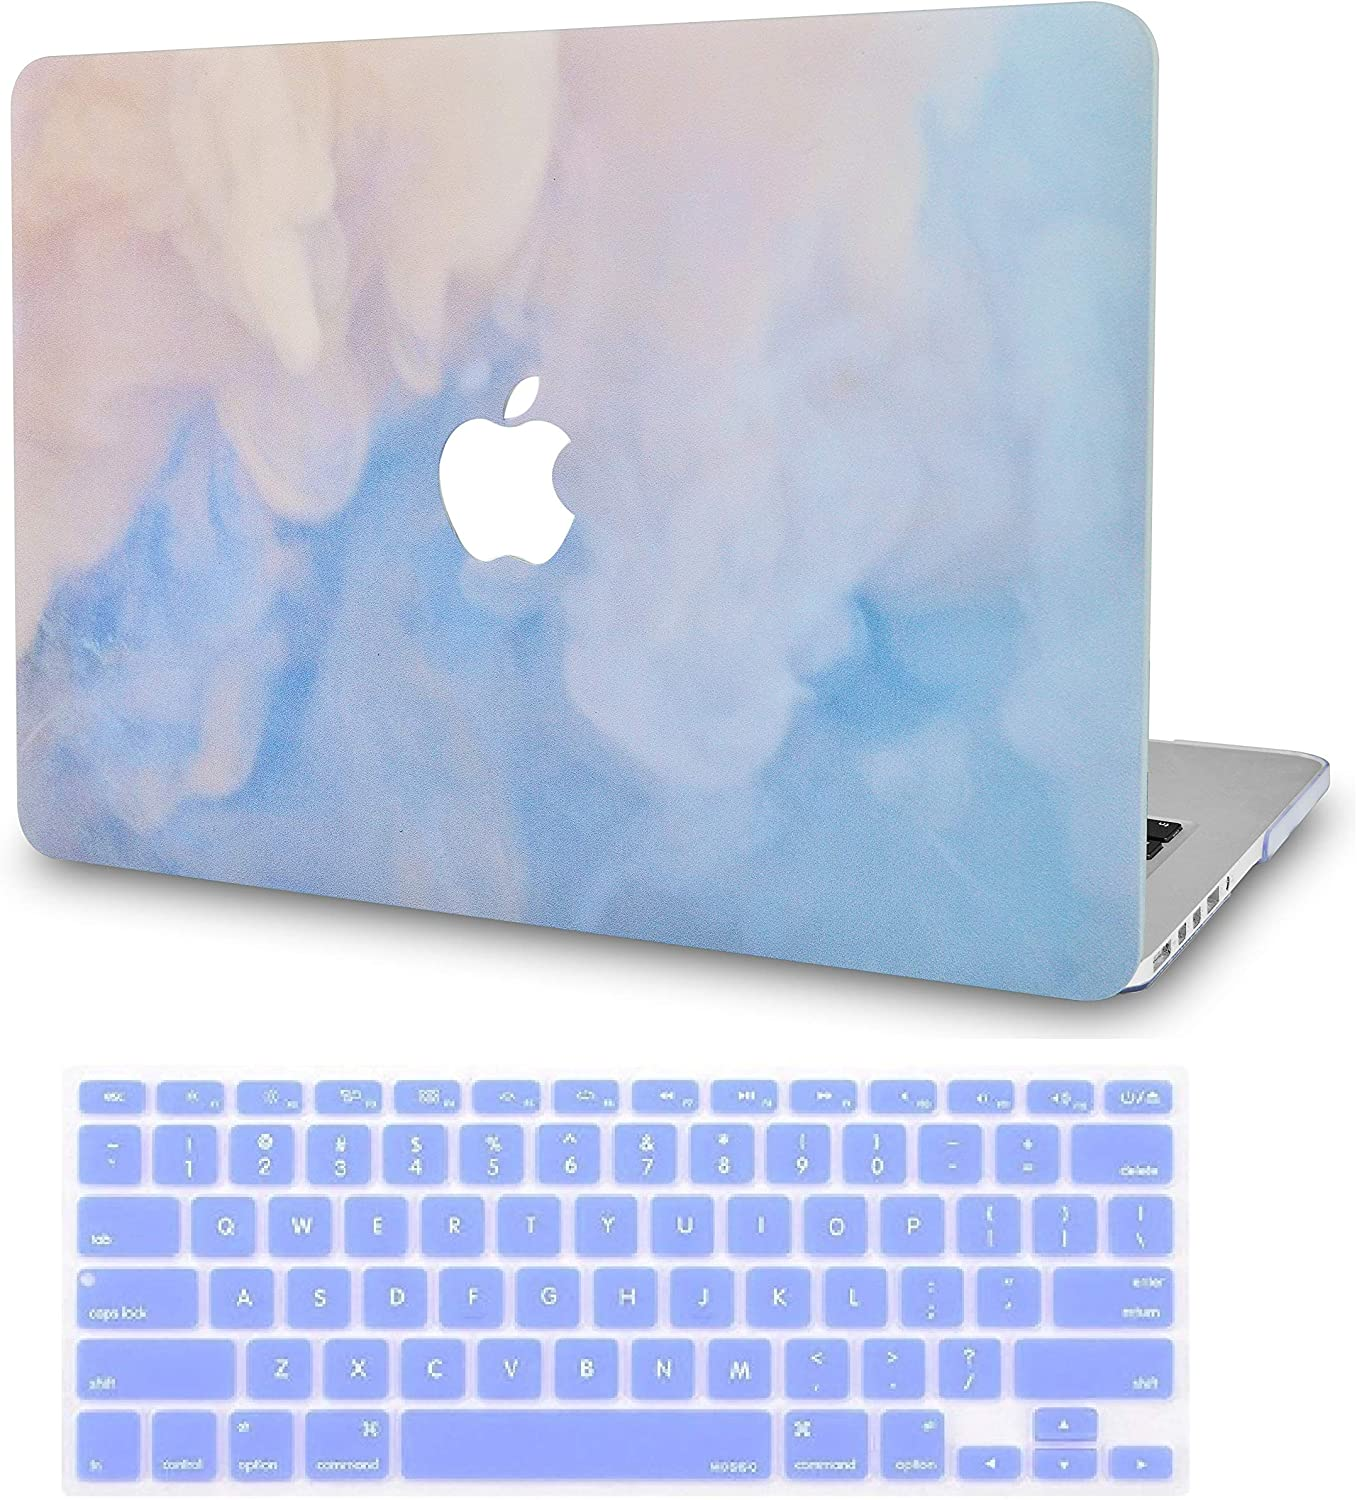 LuvCase 2 in 1 Laptop Case for MacBook Air 13 Inch (2020/2019/2018)(Touch ID) A2179/A1932 Retina Display Rubberized Plastic Hard Shell Cover & Keyboard Cover (Blue Mist)